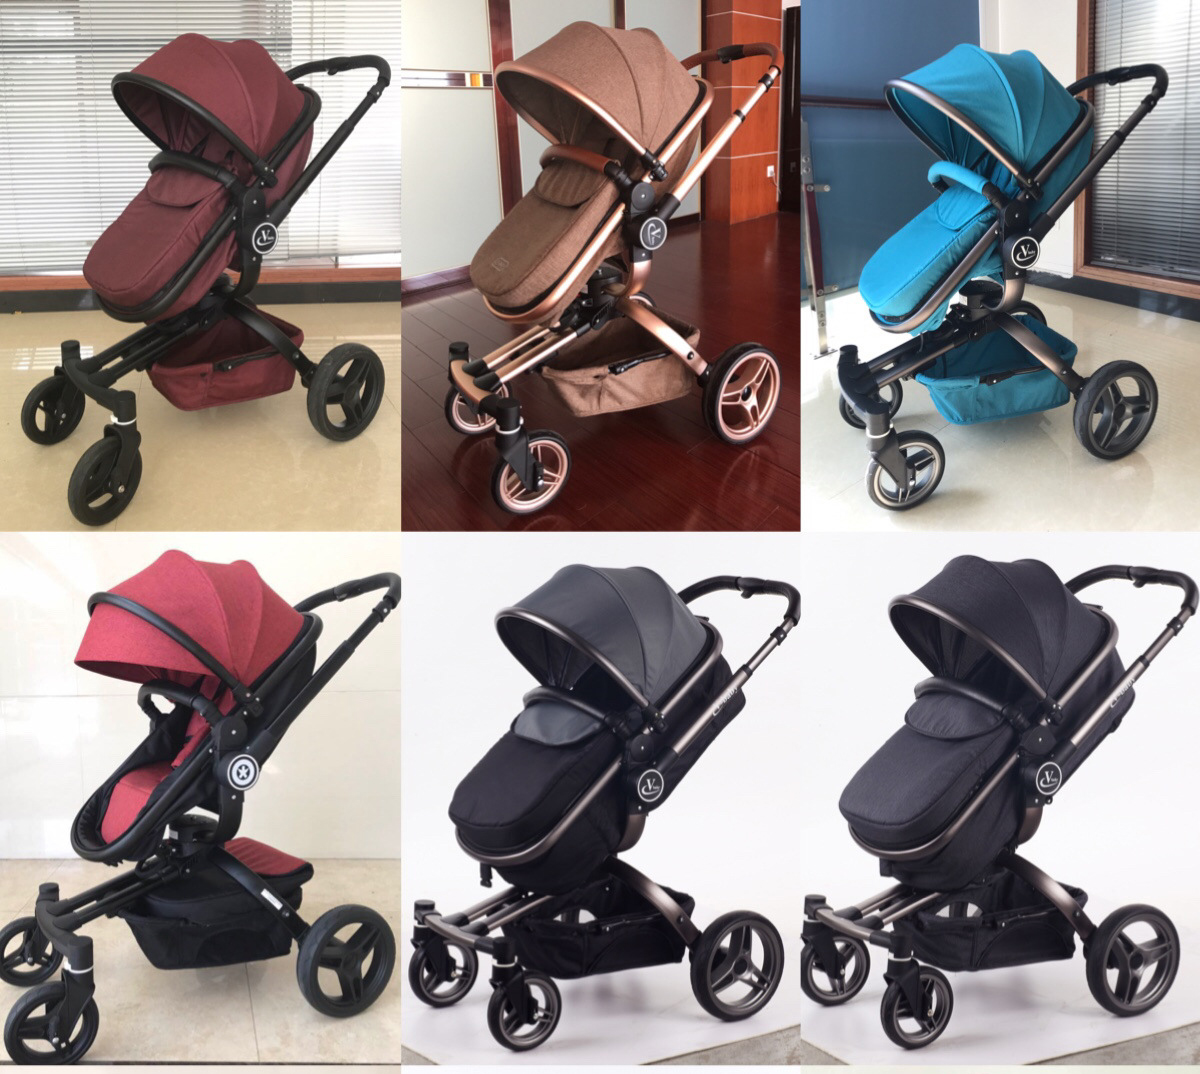 Baby Cart Baby Trolley Leather 3 In 1 High Quality Landscape Shockproof 4 Wheels Baby Trolley Can Sit on Reclining Stroller